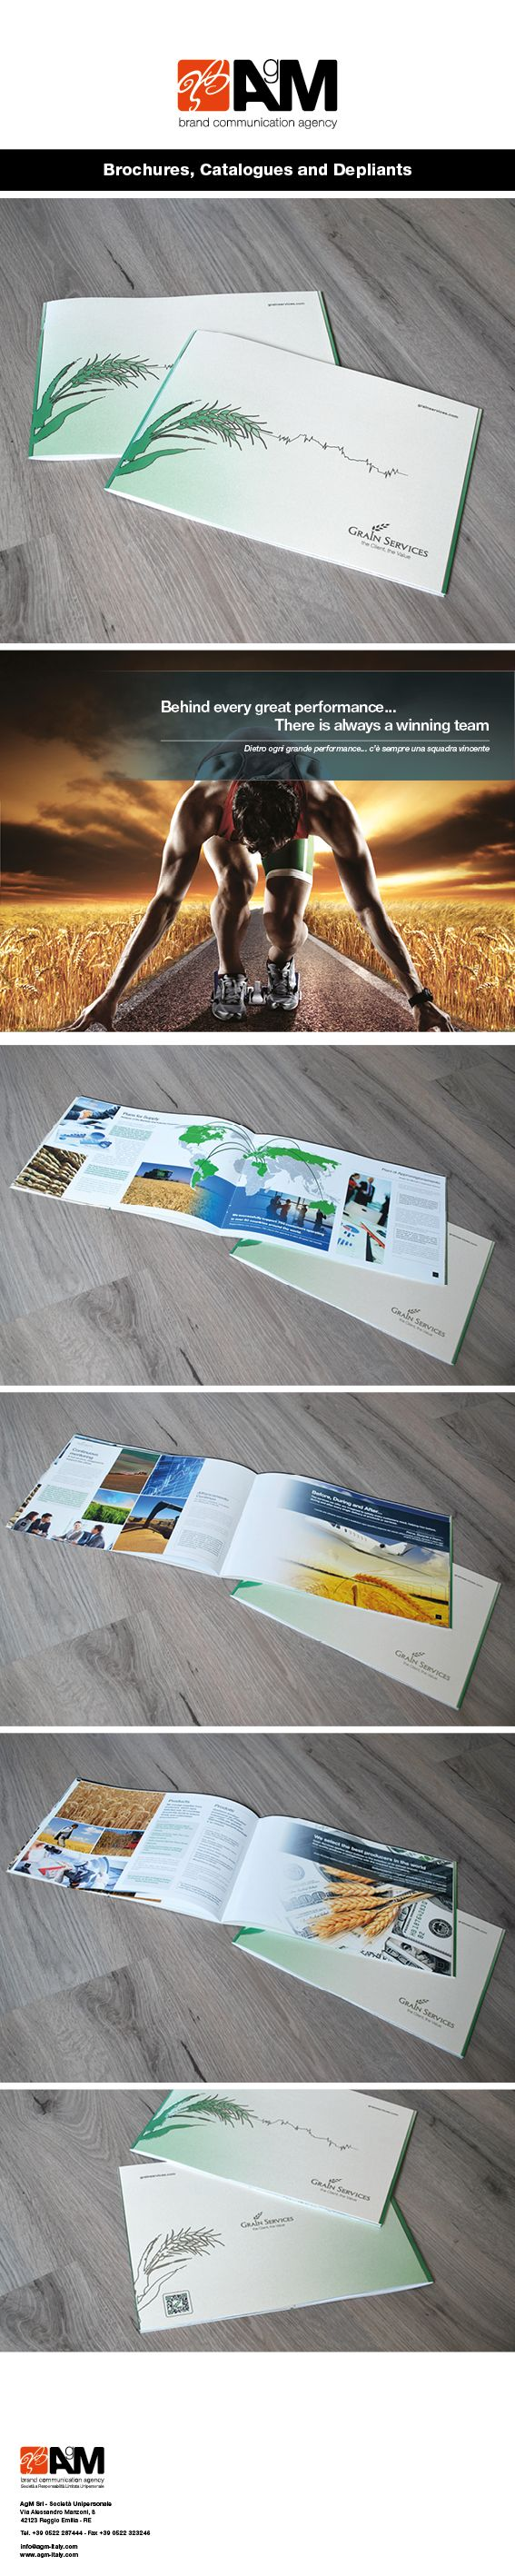 AgM Italy, Catalogues, Brochures, Depliants, Flyer, Italian Design.   Catalogo, Referenze, Aziendale, catalogo prodotti, brochure, flyer Italian Design.  #agm-italy, #italiandesign, #catalogues, #brochures #grainservices